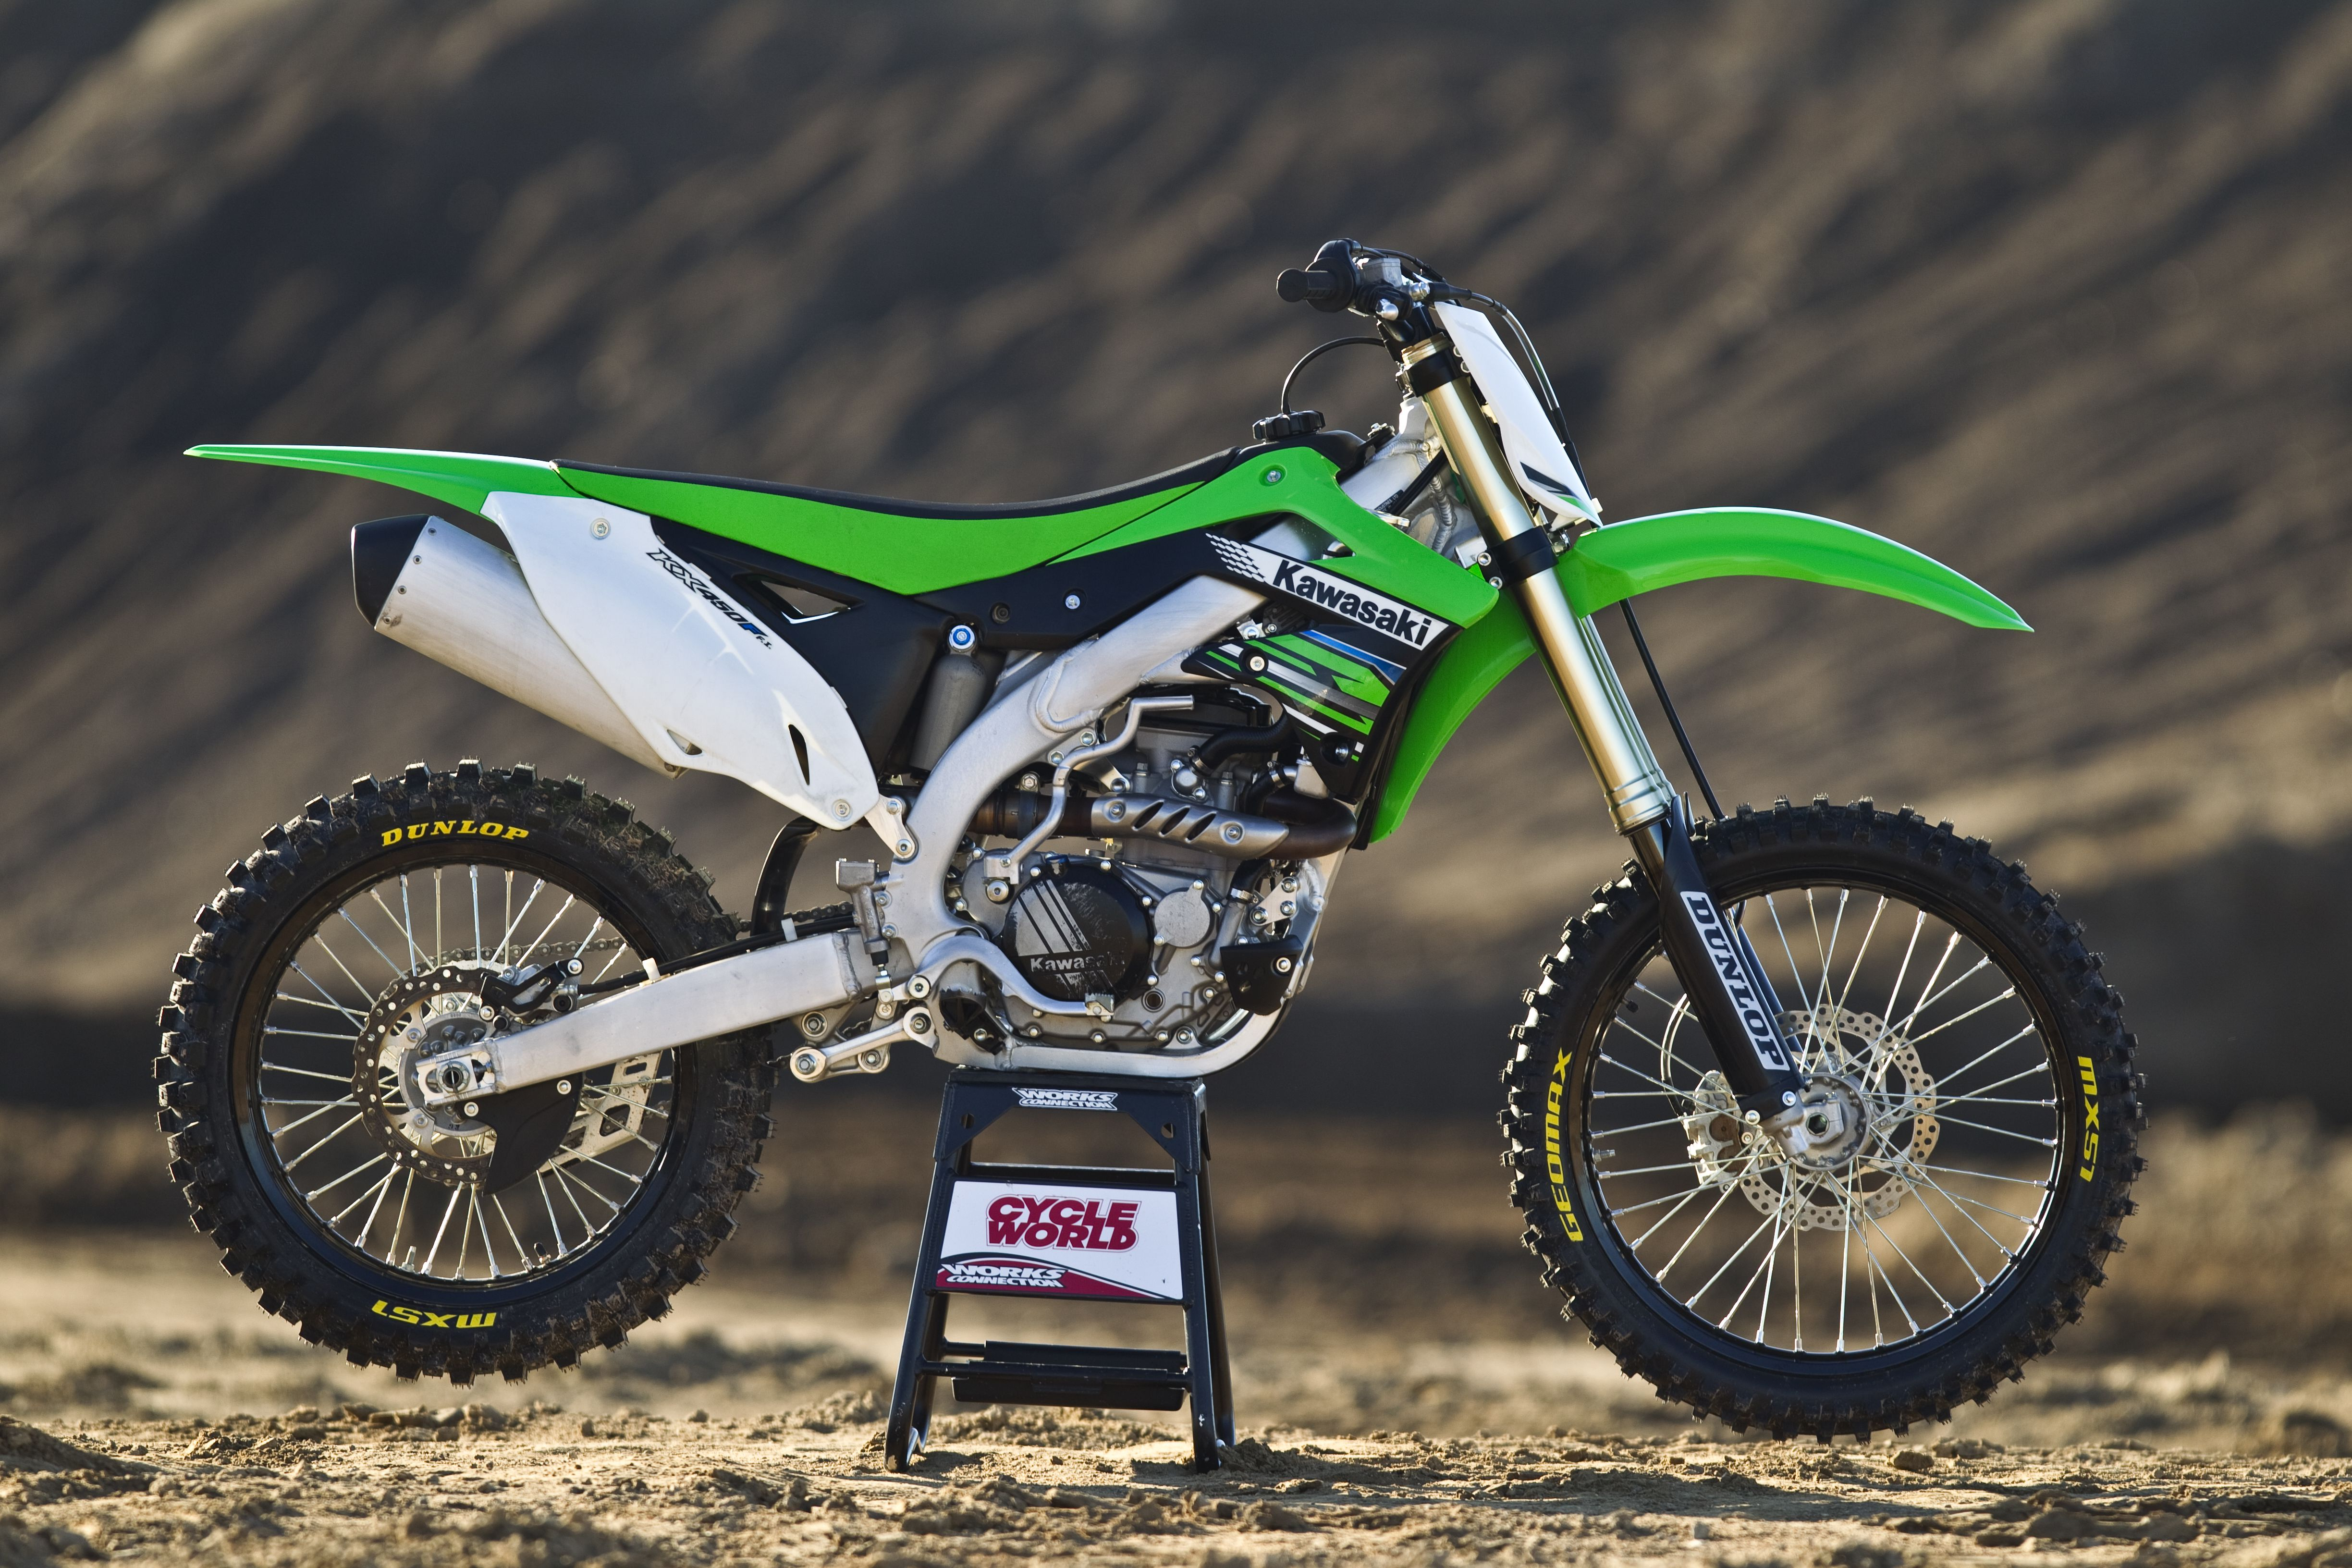 450-Class Motocross Bike Comparison Test Review | Cycle World